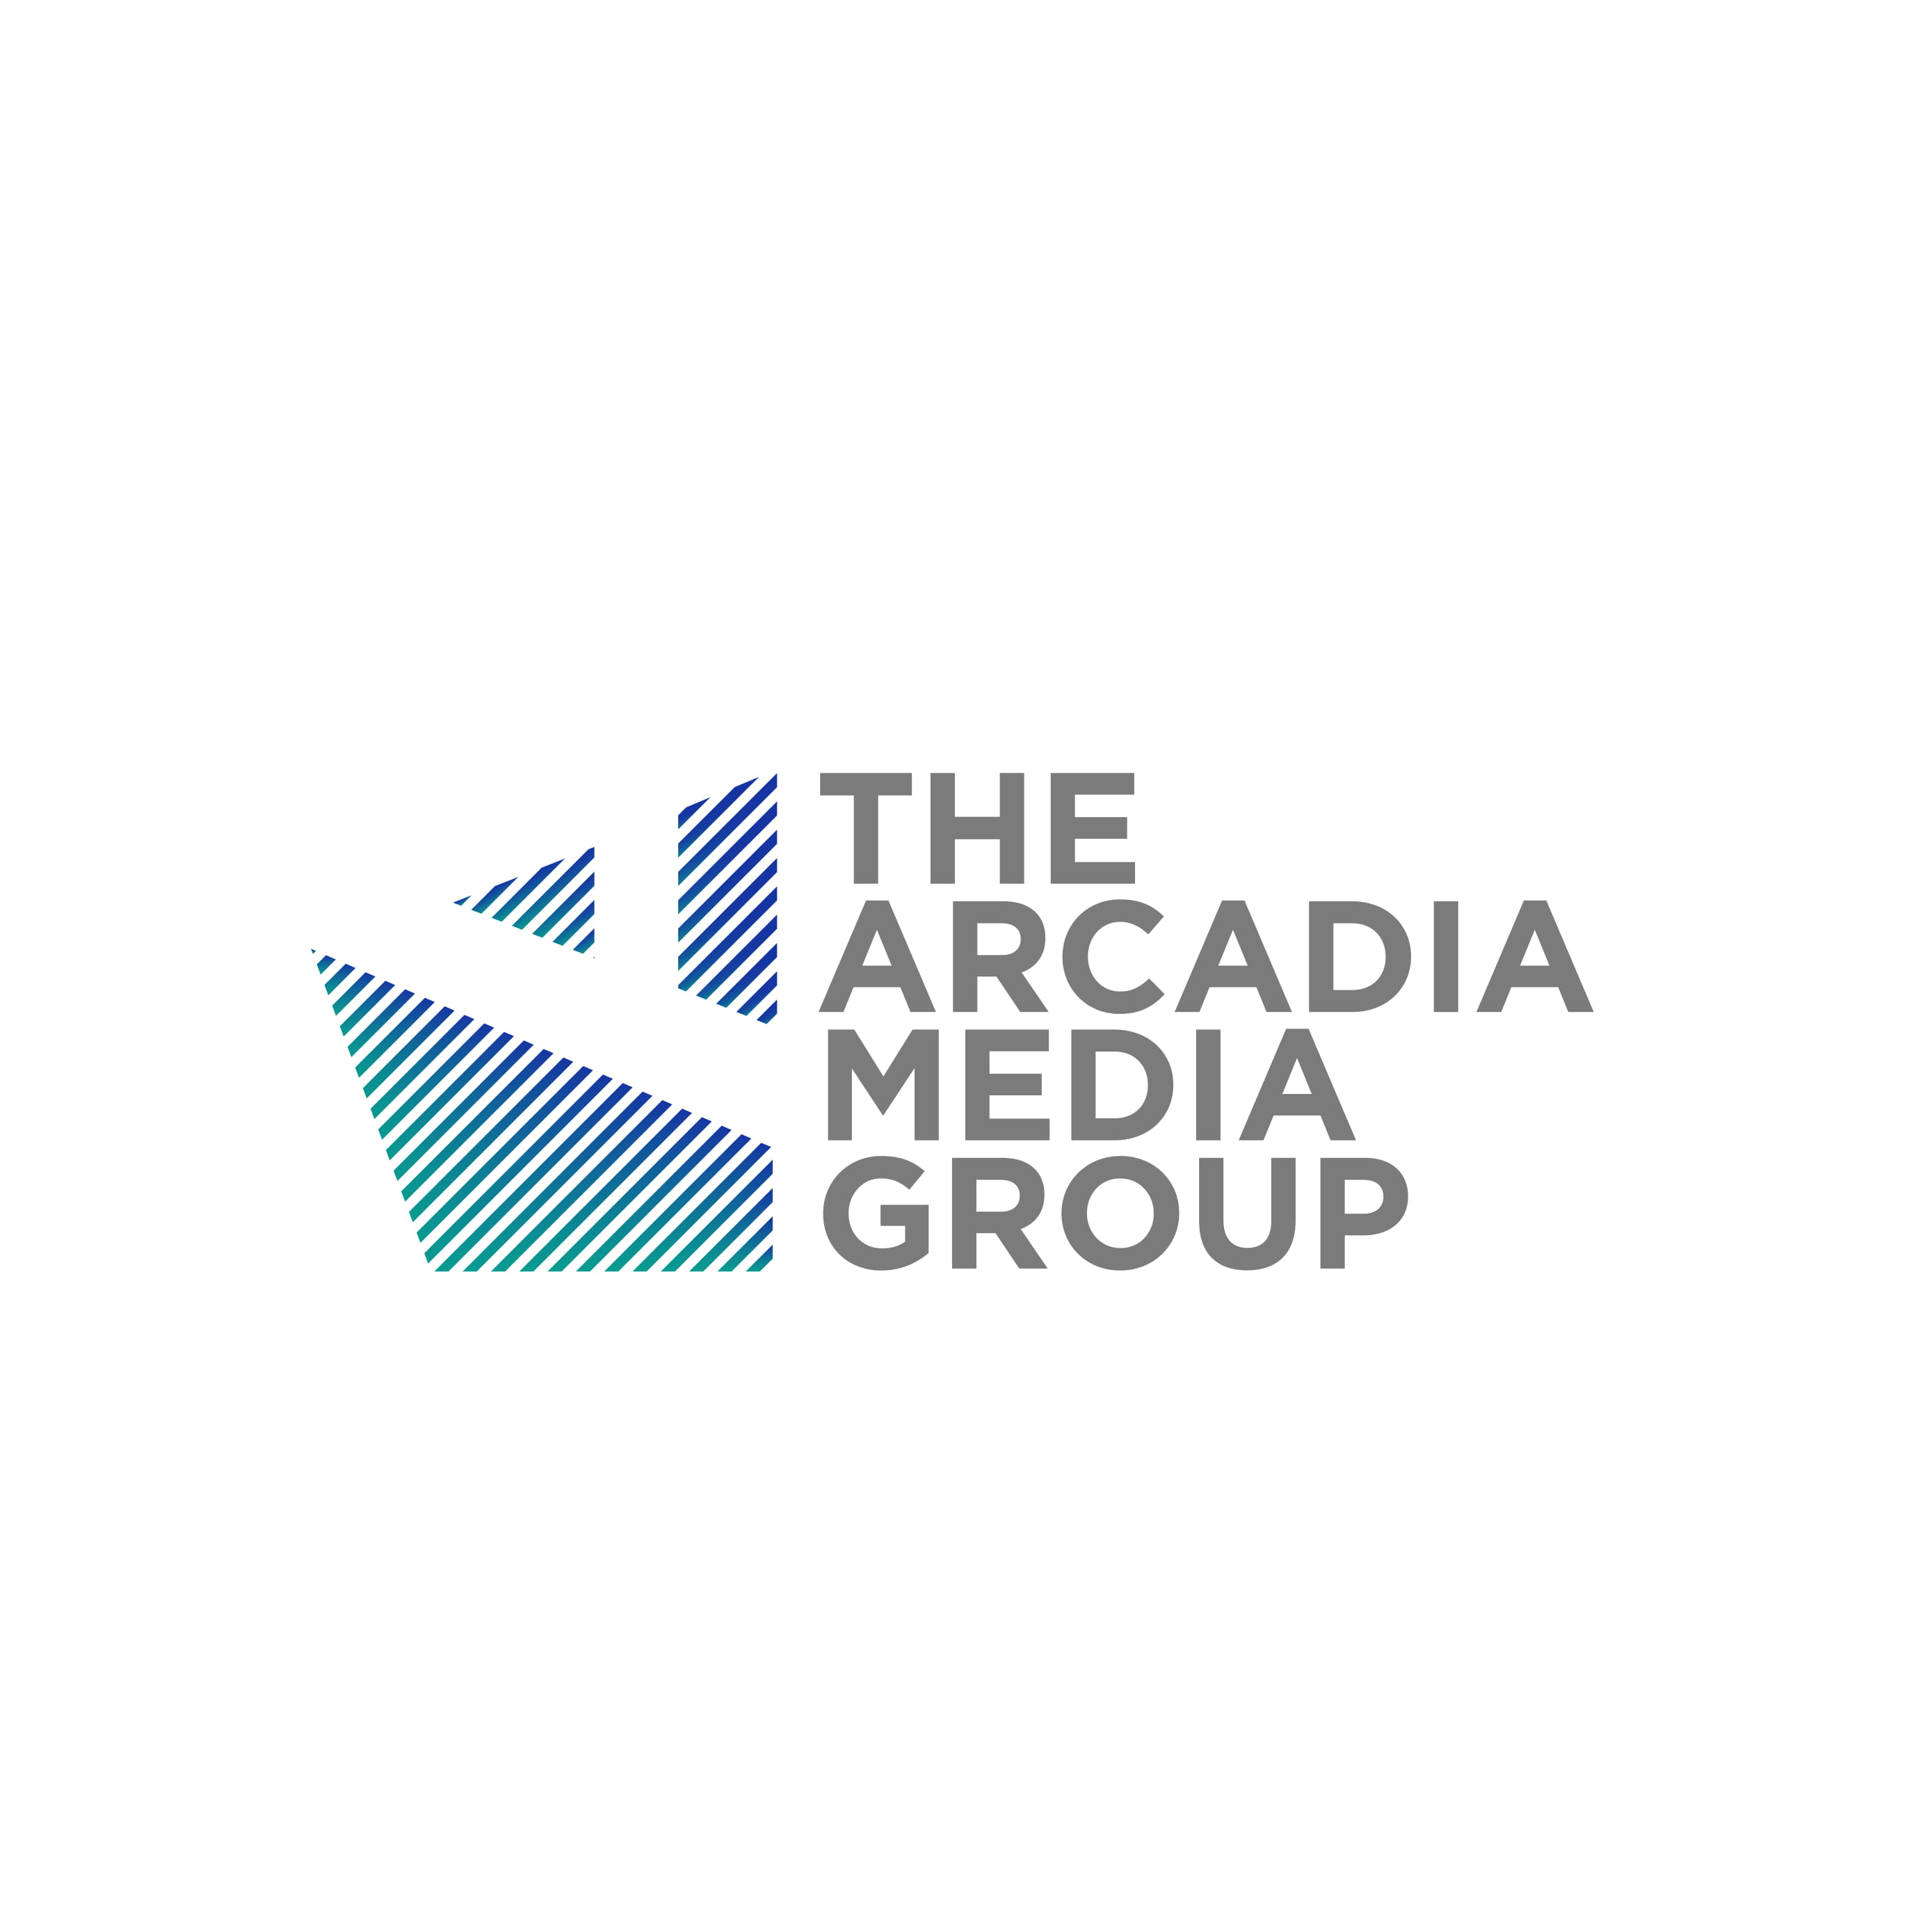 The Arcadia Media Group